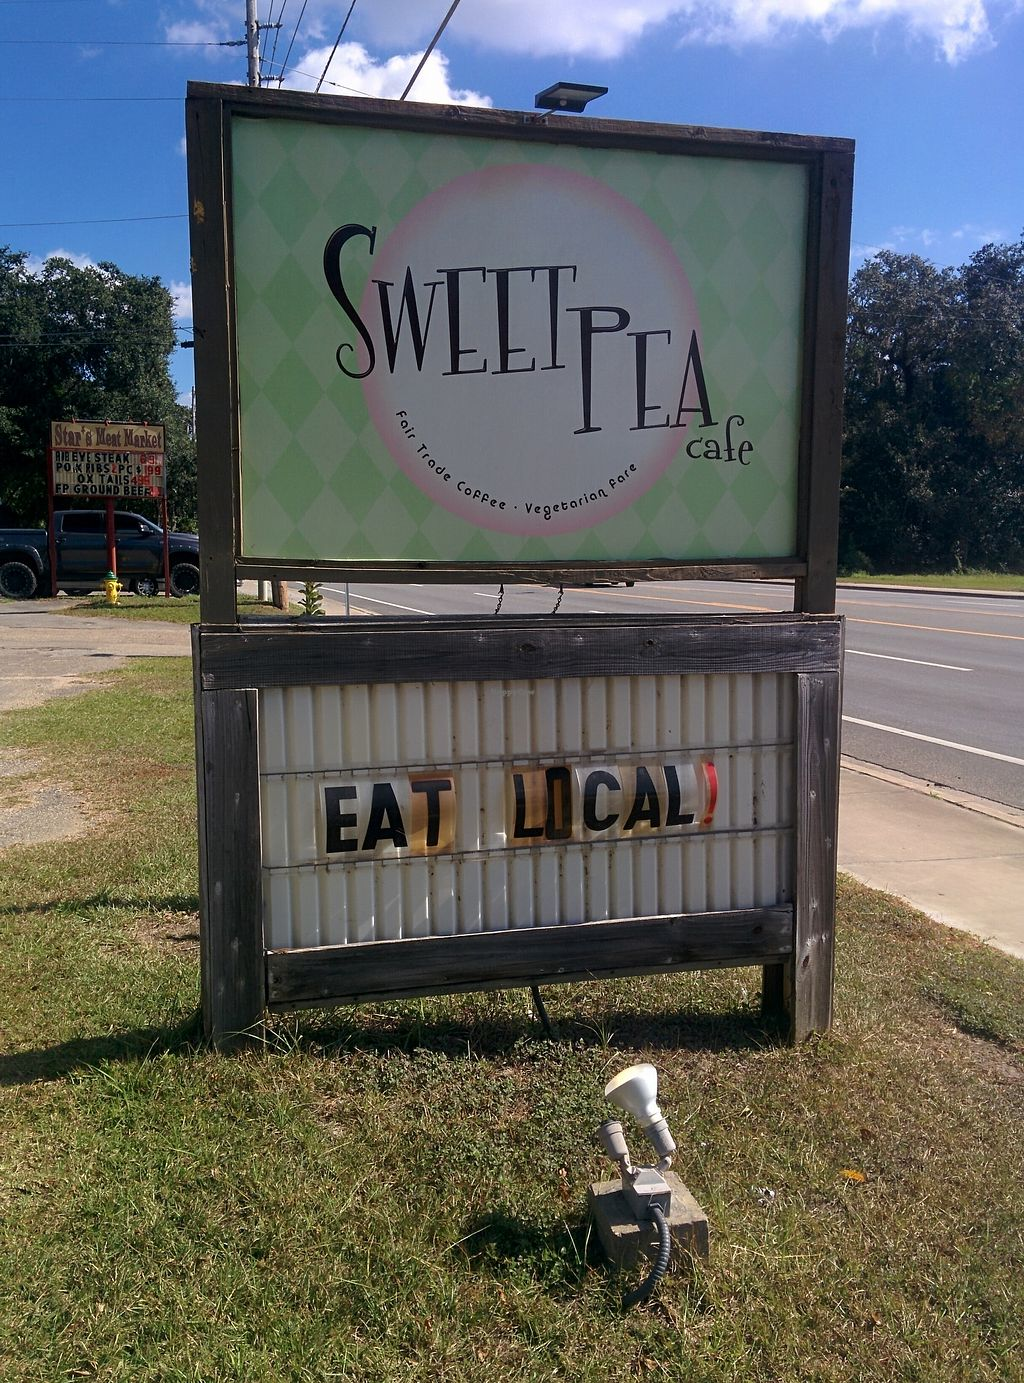 "Photo of Sweet Pea Cafe  by <a href=""/members/profile/MizzB"">MizzB</a> <br/>View from the road <br/> November 13, 2017  - <a href='/contact/abuse/image/26274/325236'>Report</a>"